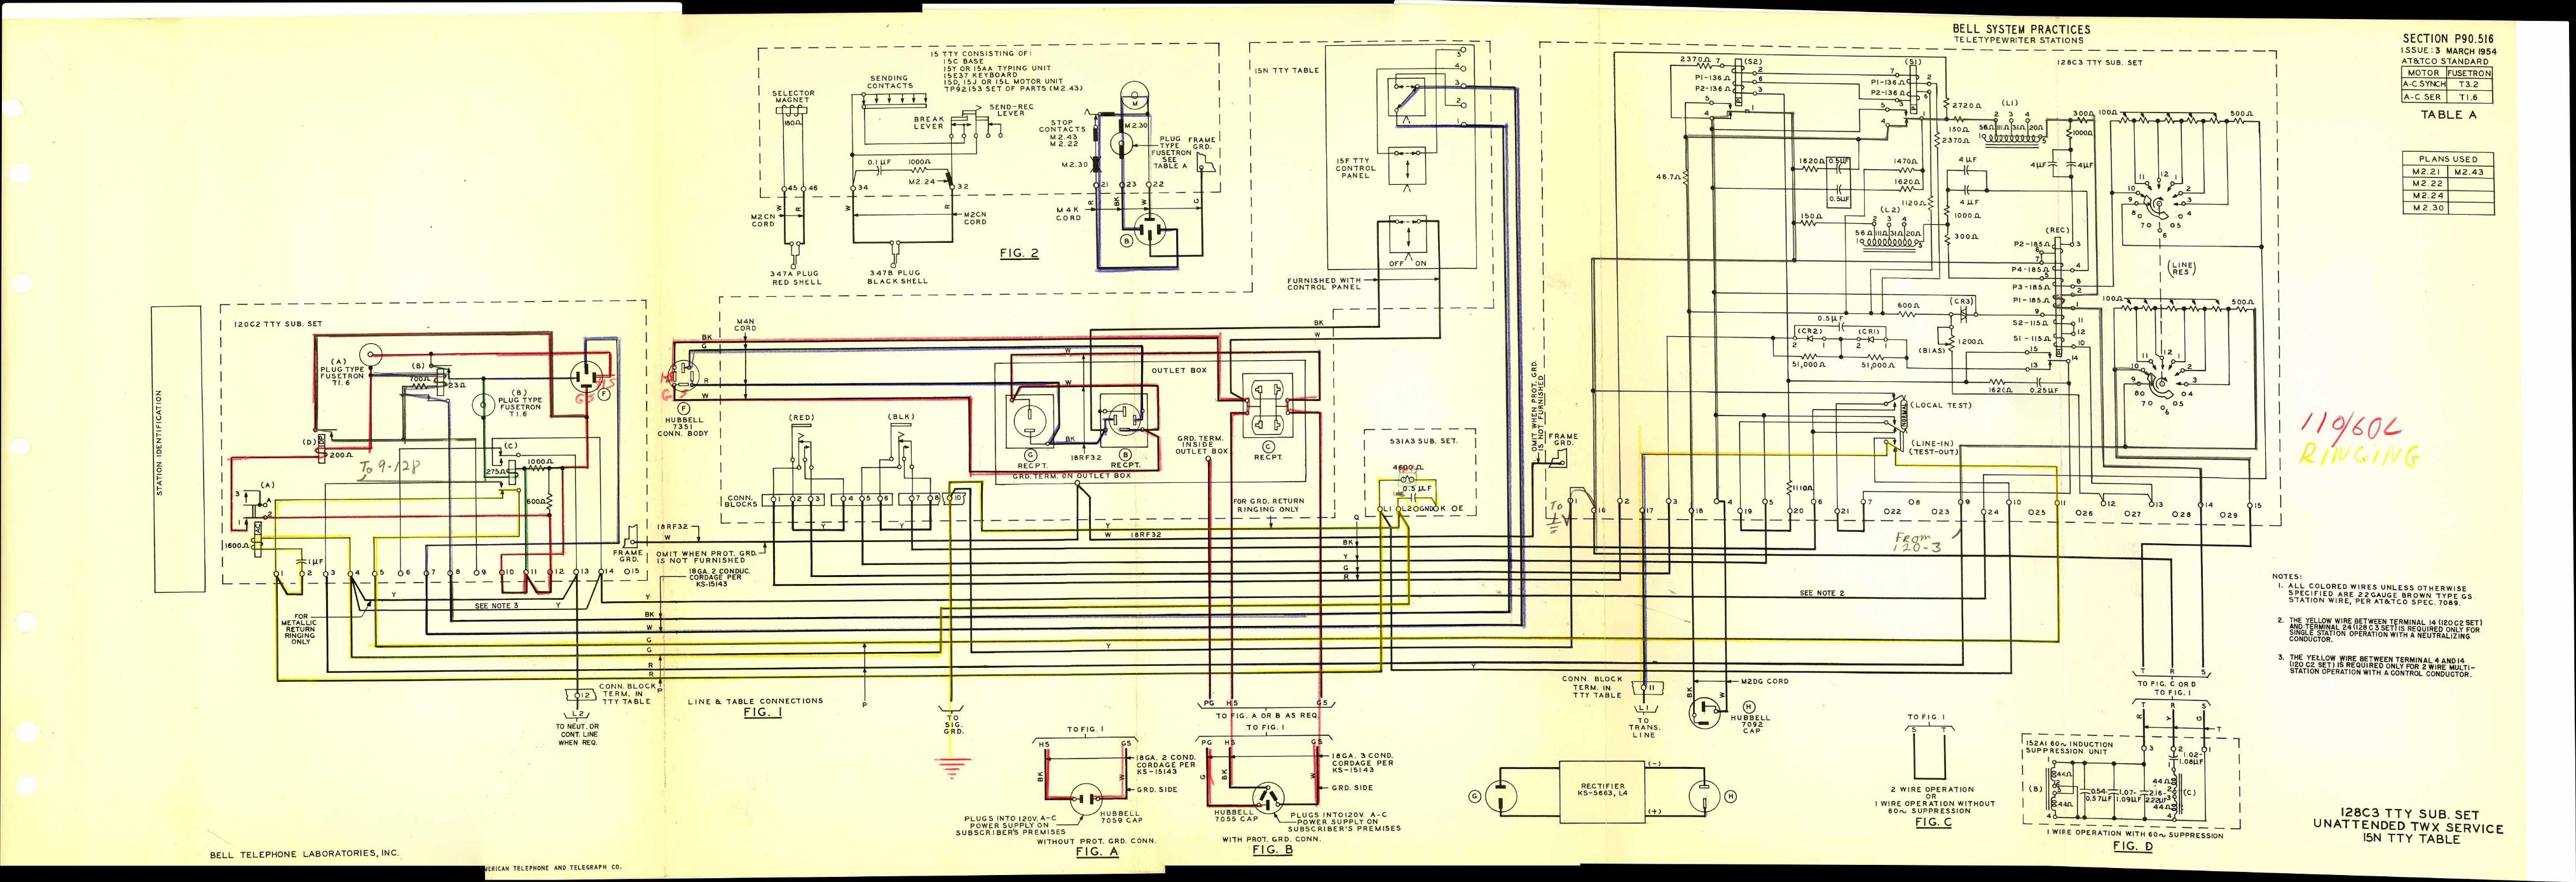 Teletype Wiring Diagrams And Schematics P90 Diagram 2 P90516 Link